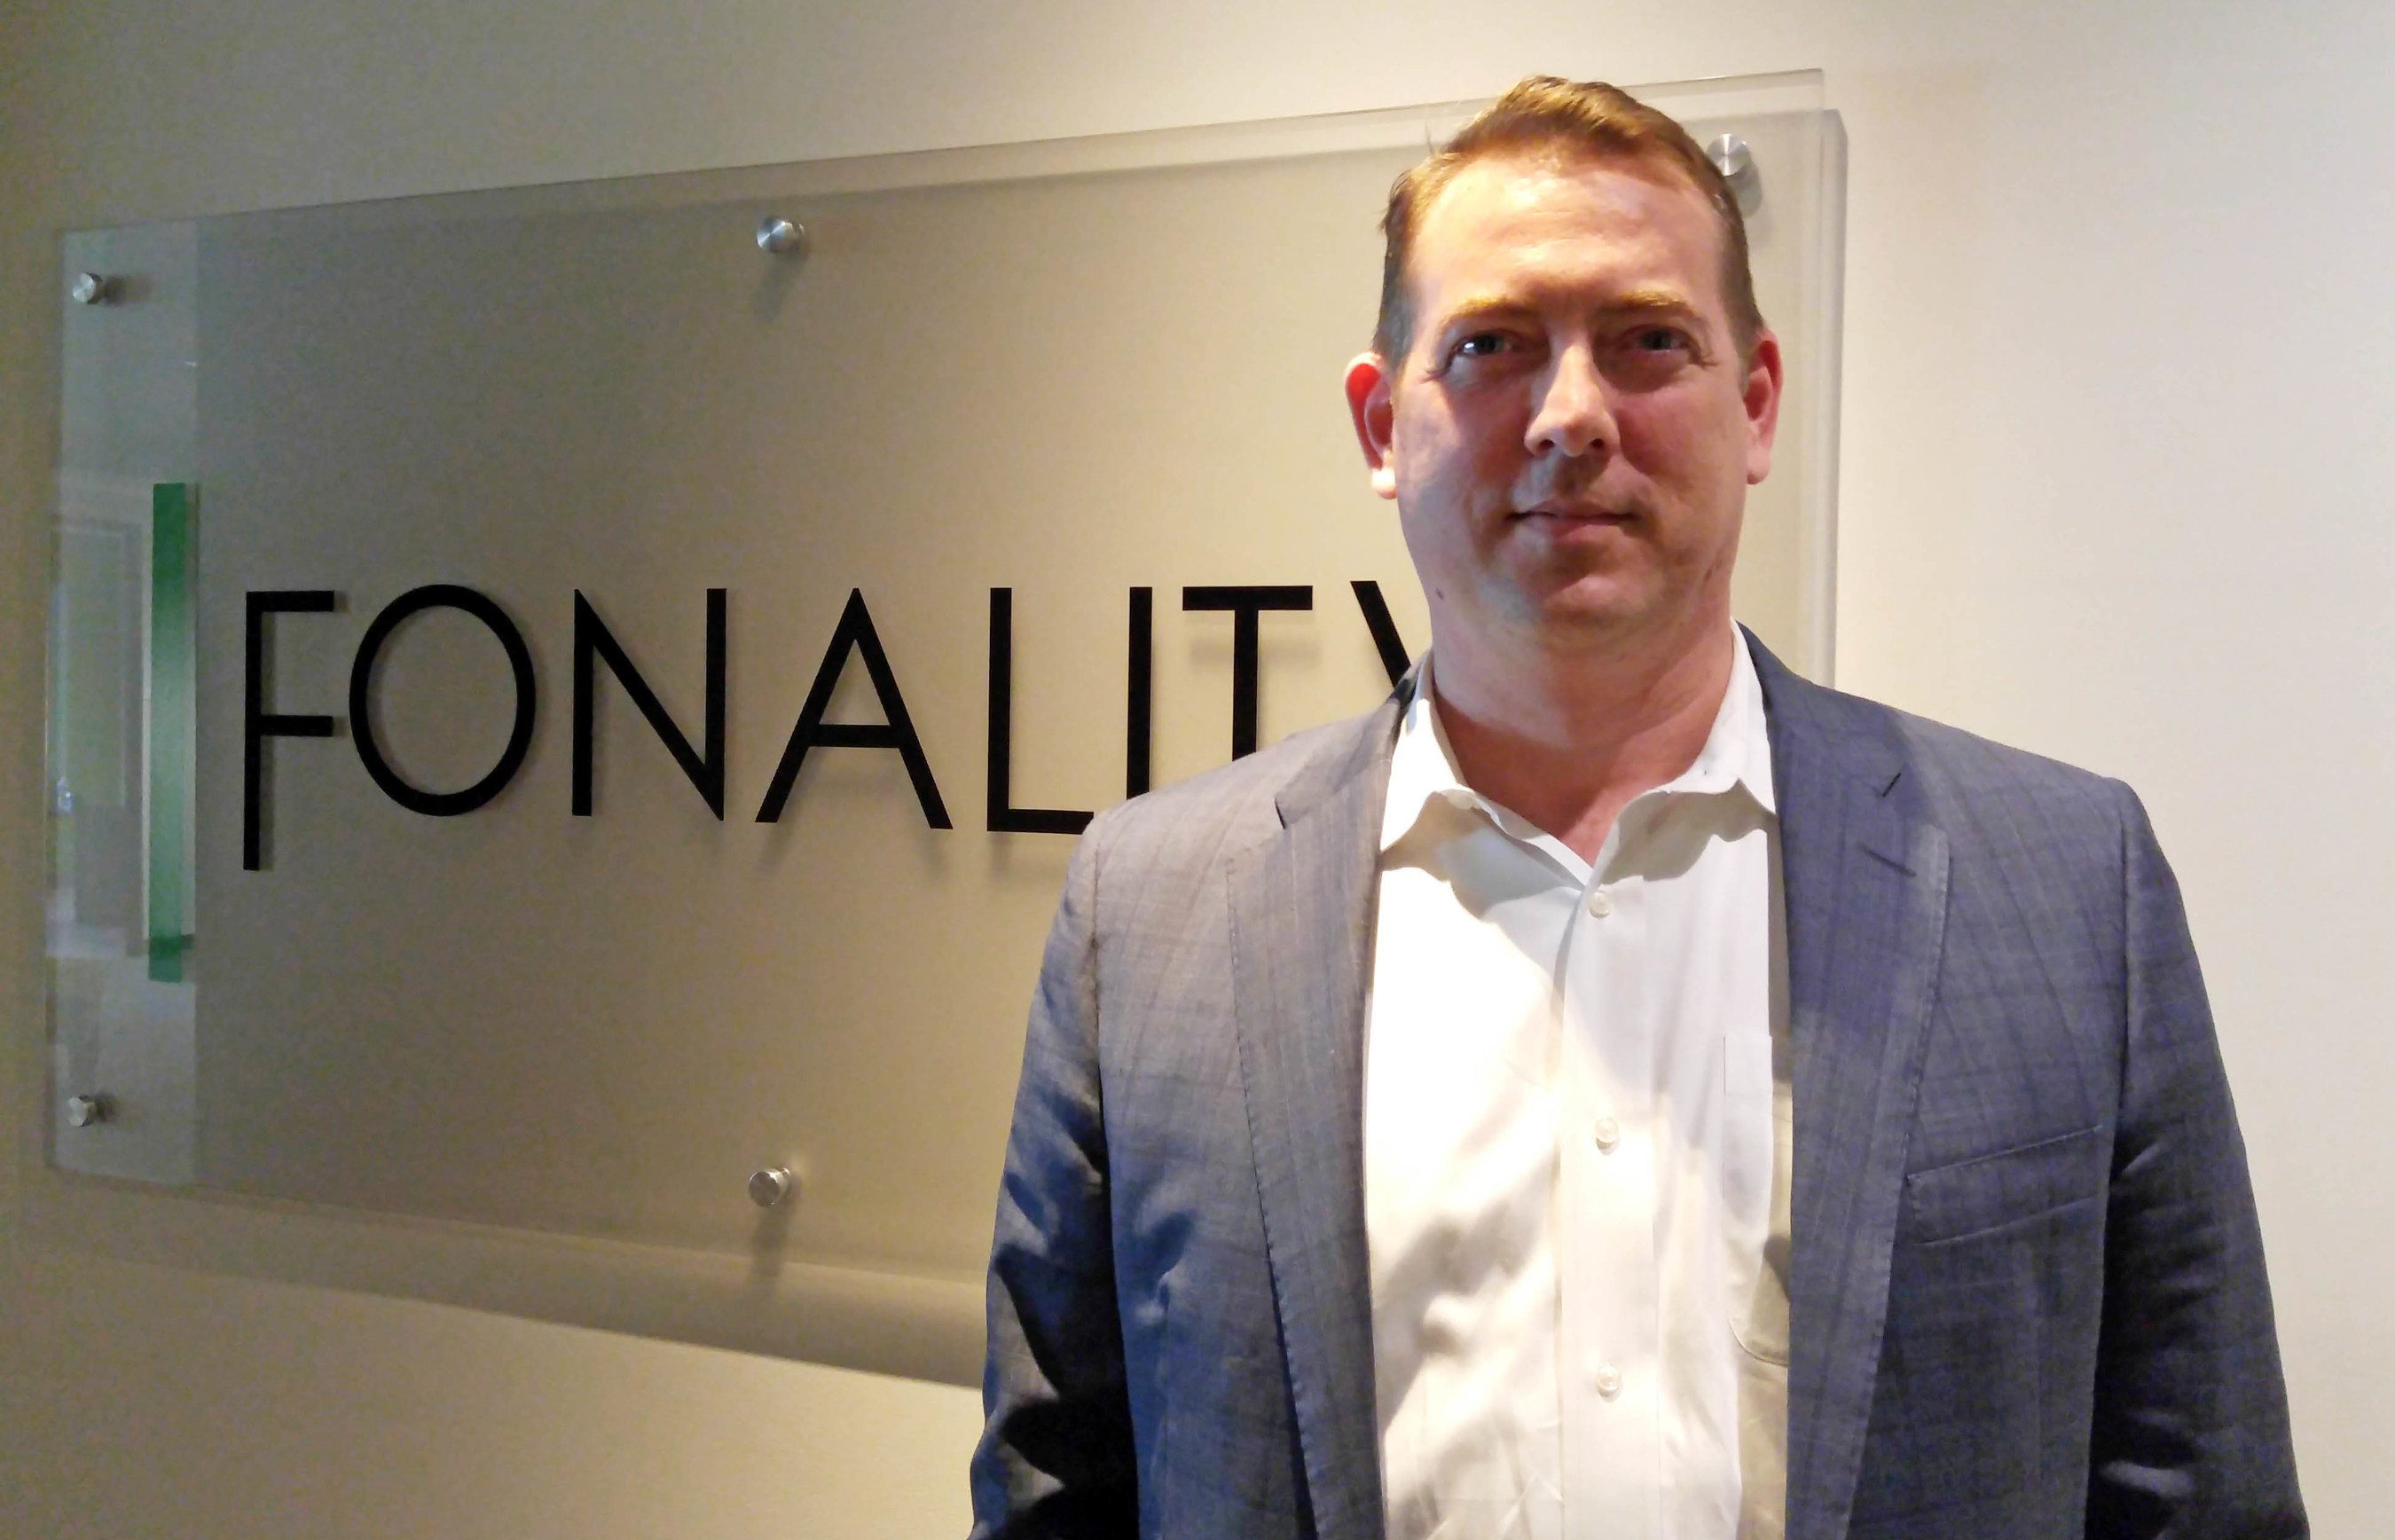 Unified communications (UC) veteran David Beagle has joined business phone solution leader Fonality as the company's vice president of channel development.